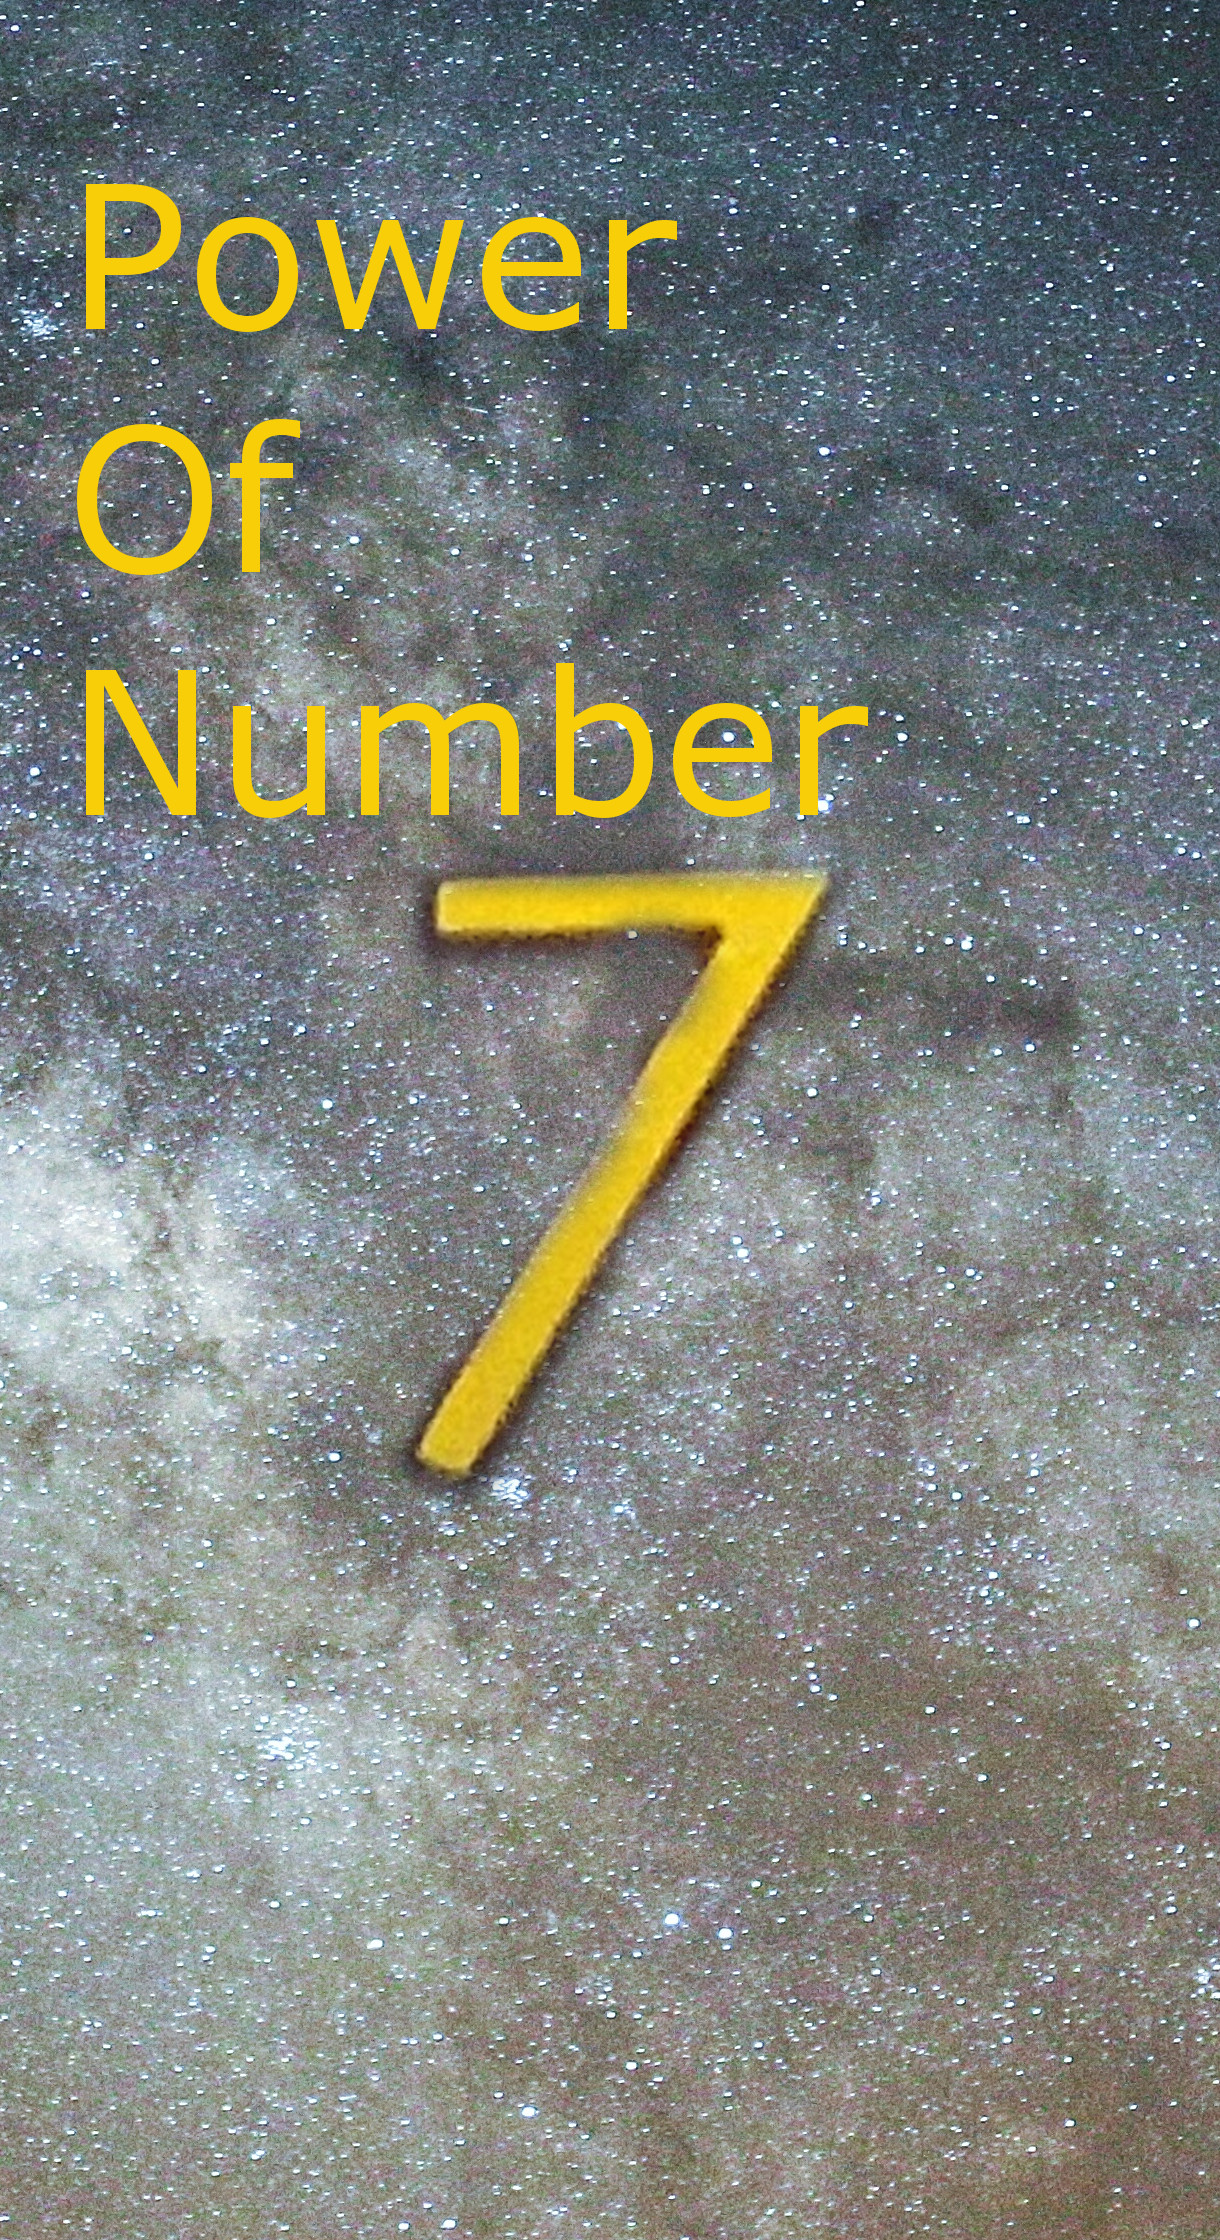 power of number 7